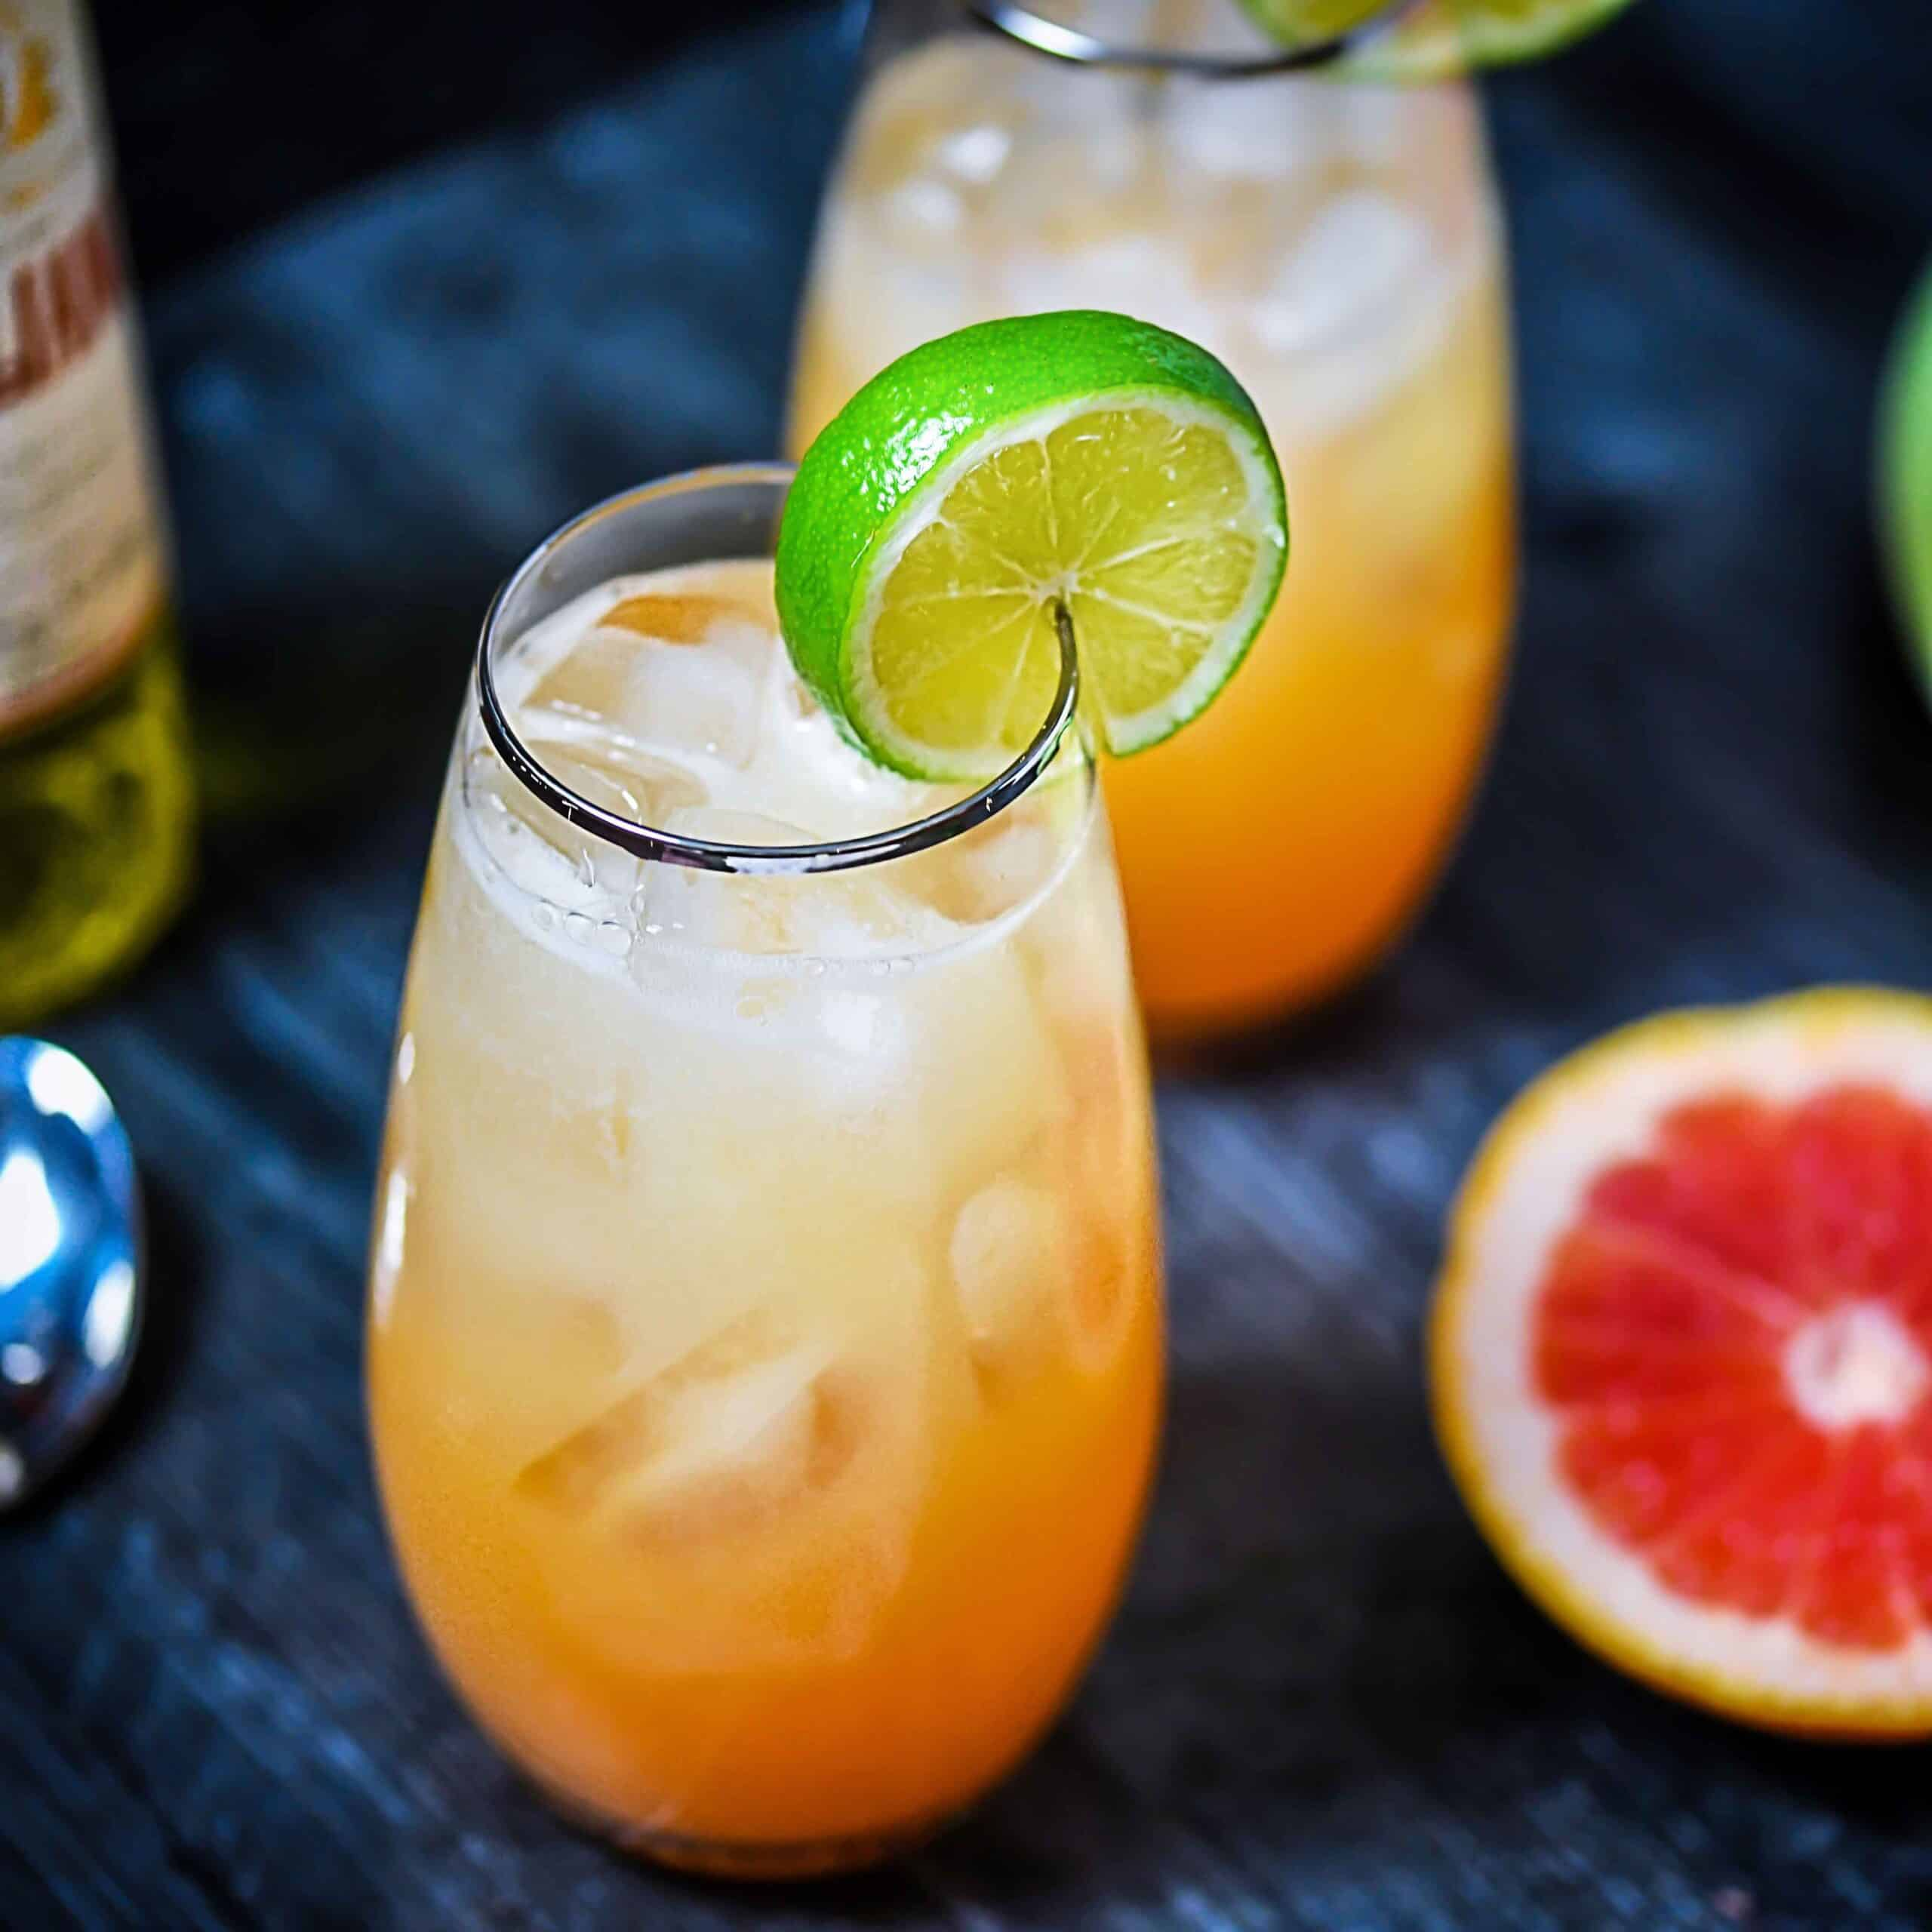 Tequila Wallbanger cocktails with lime wedges